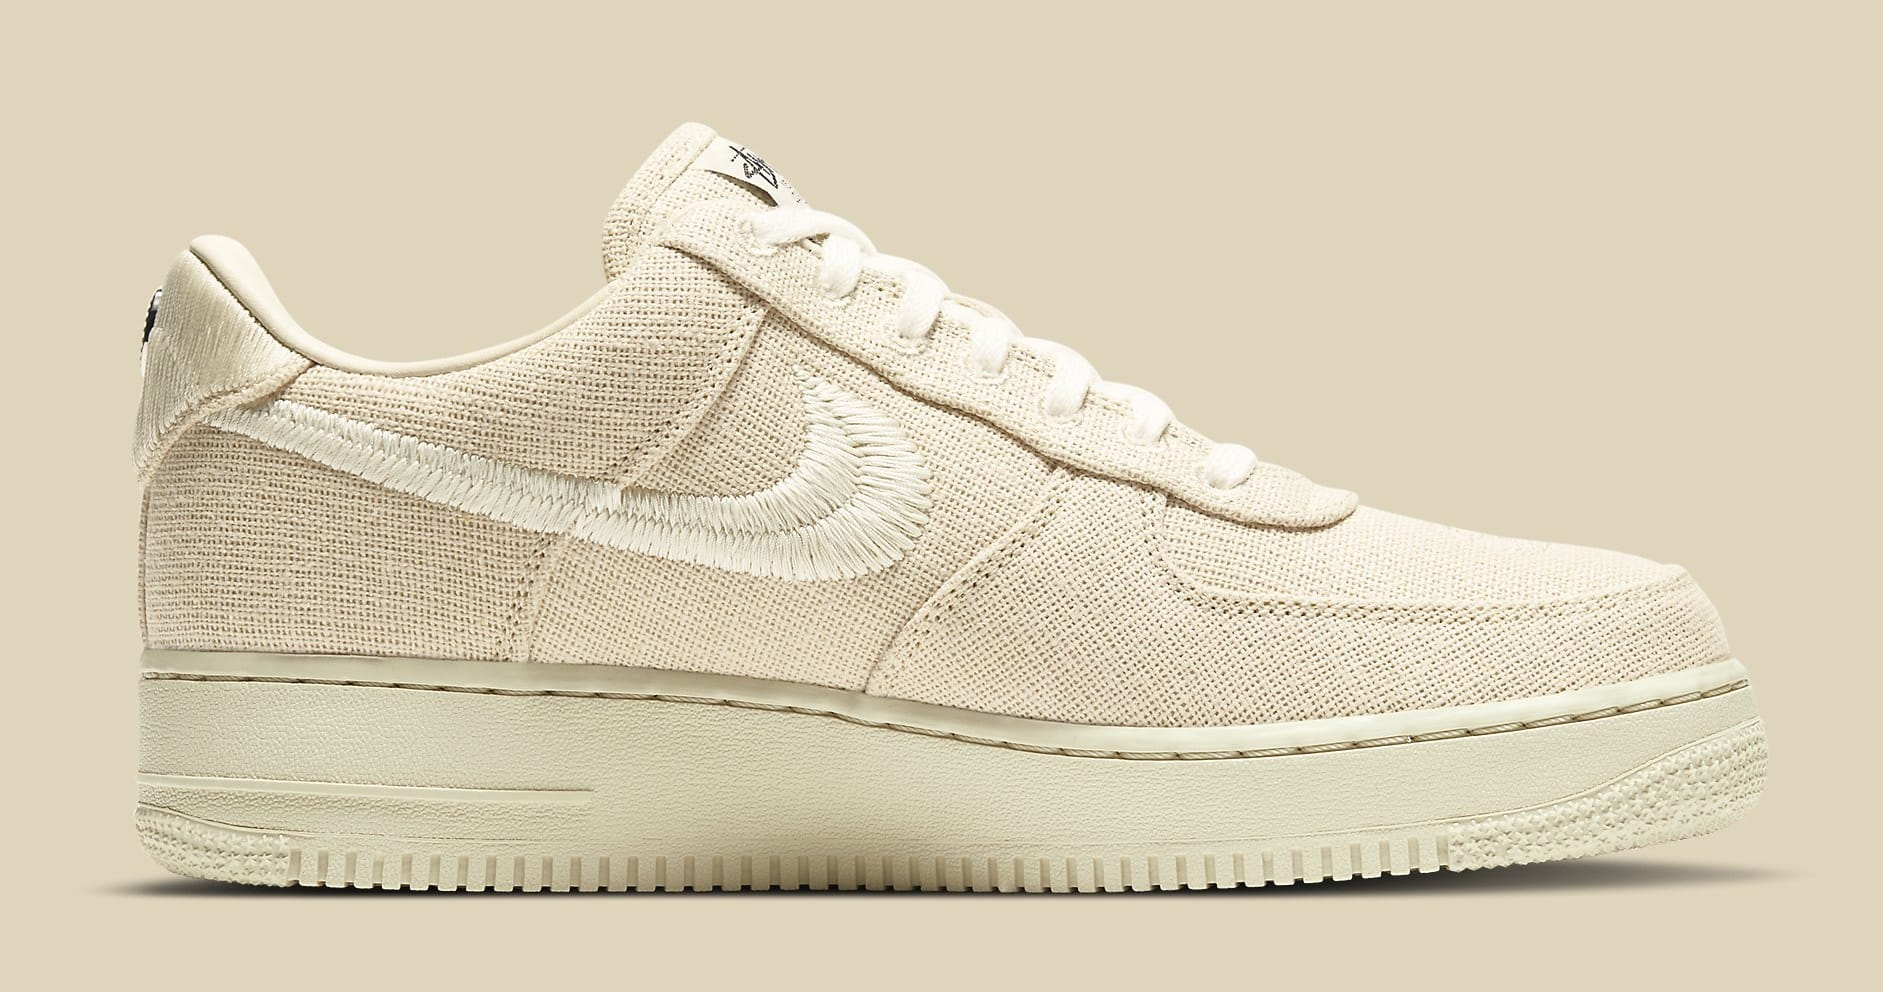 Stussy x Nike Air Force 1 Low 'Fossil Stone' CZ9084-200 Medial